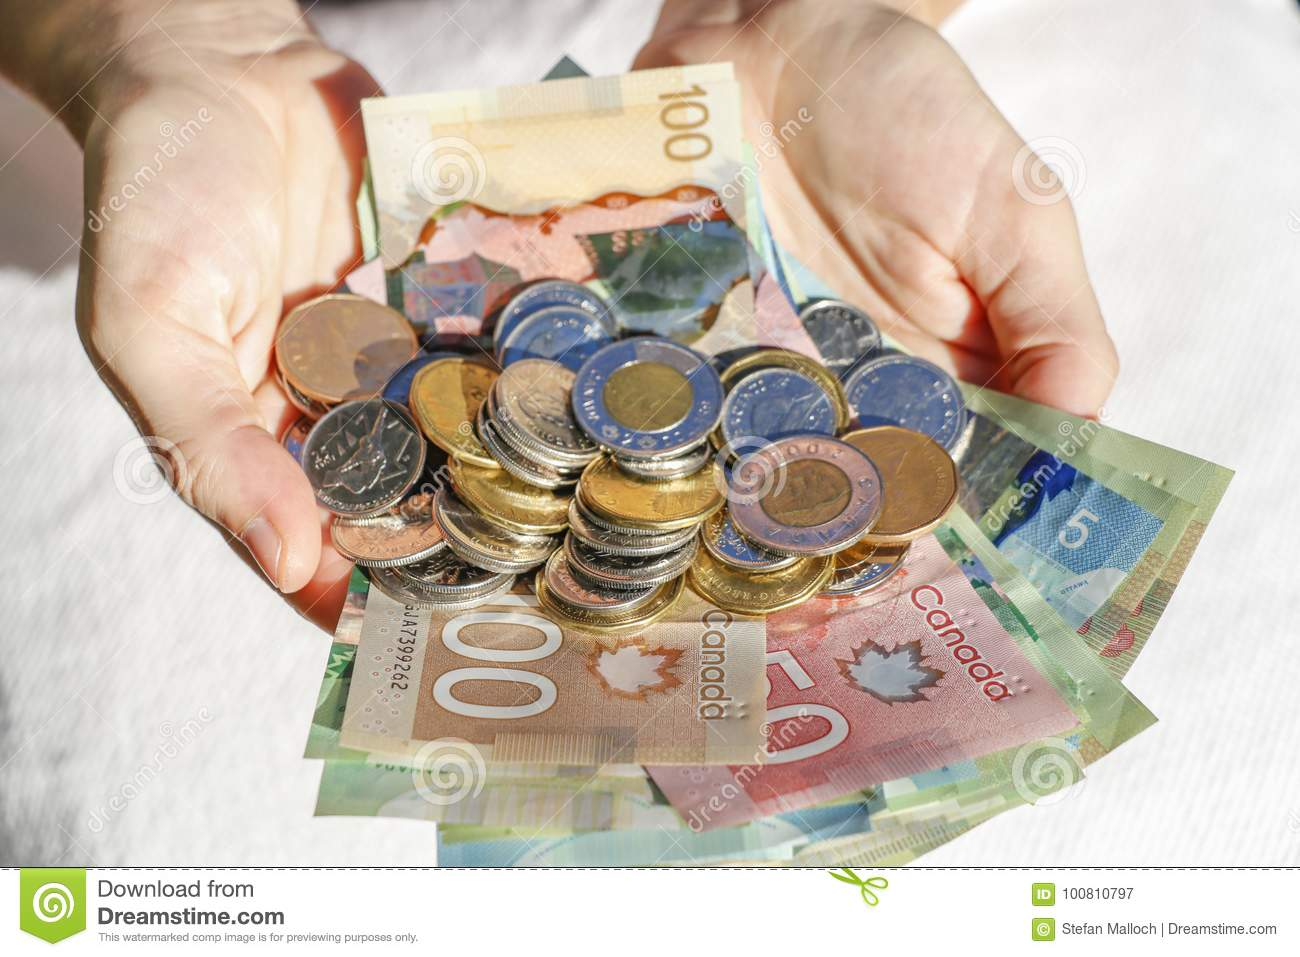 Hands holding Canadian Cash and Bills